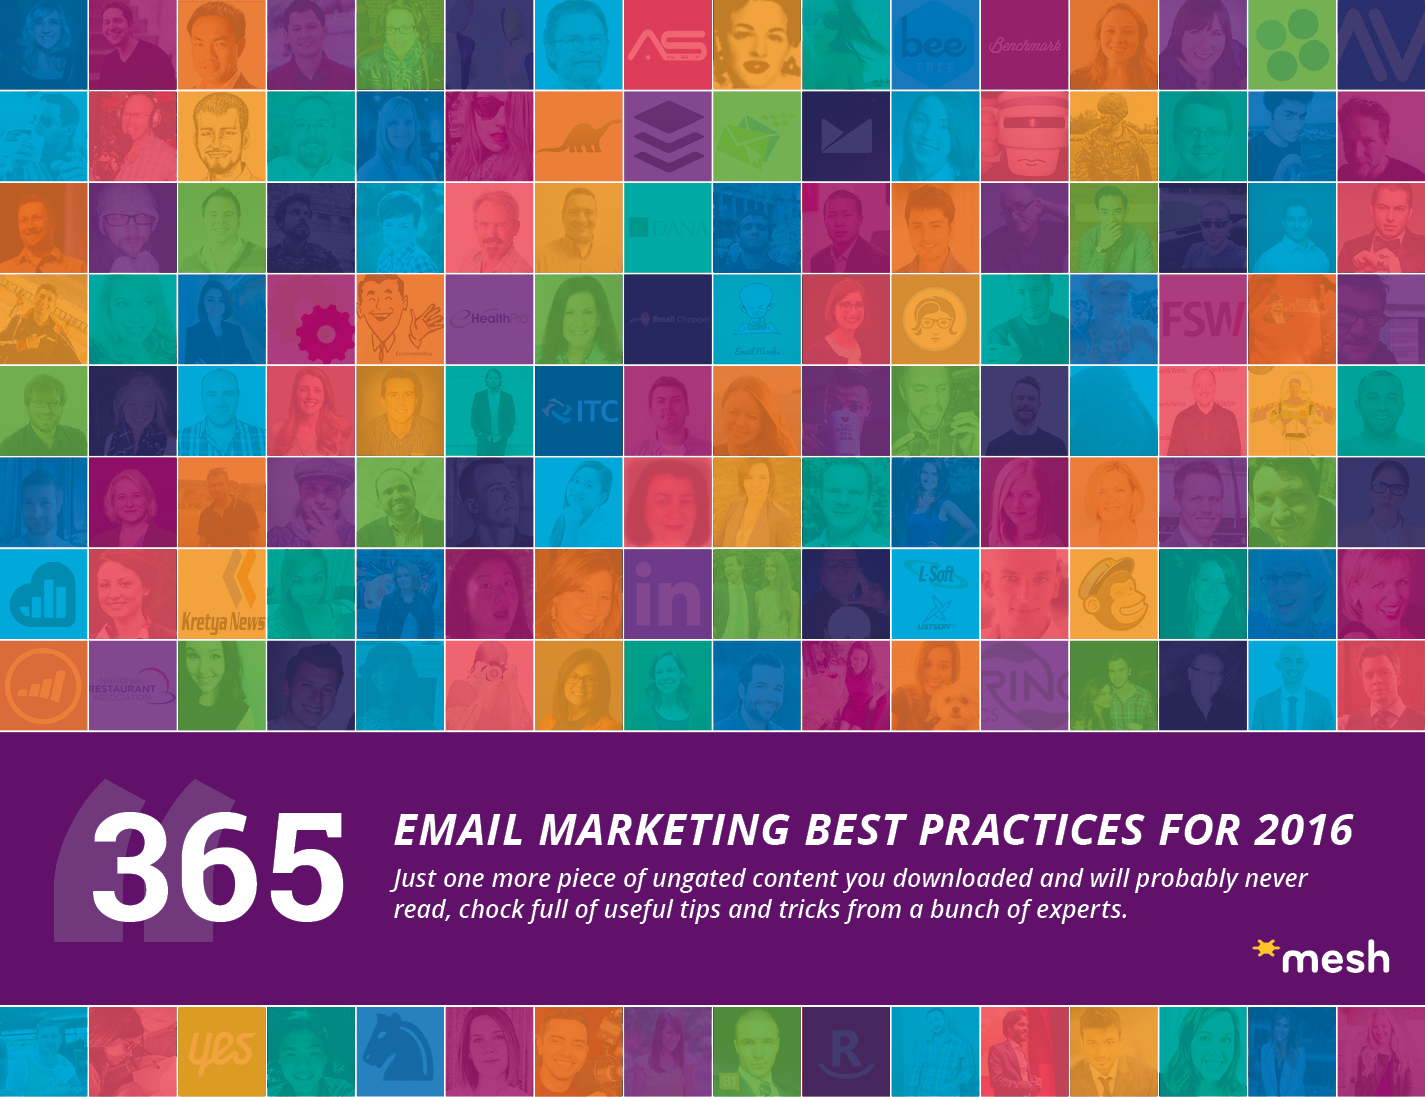 365 Email Marketing Best Practices for 2016 via @meshagency #365EmailTips